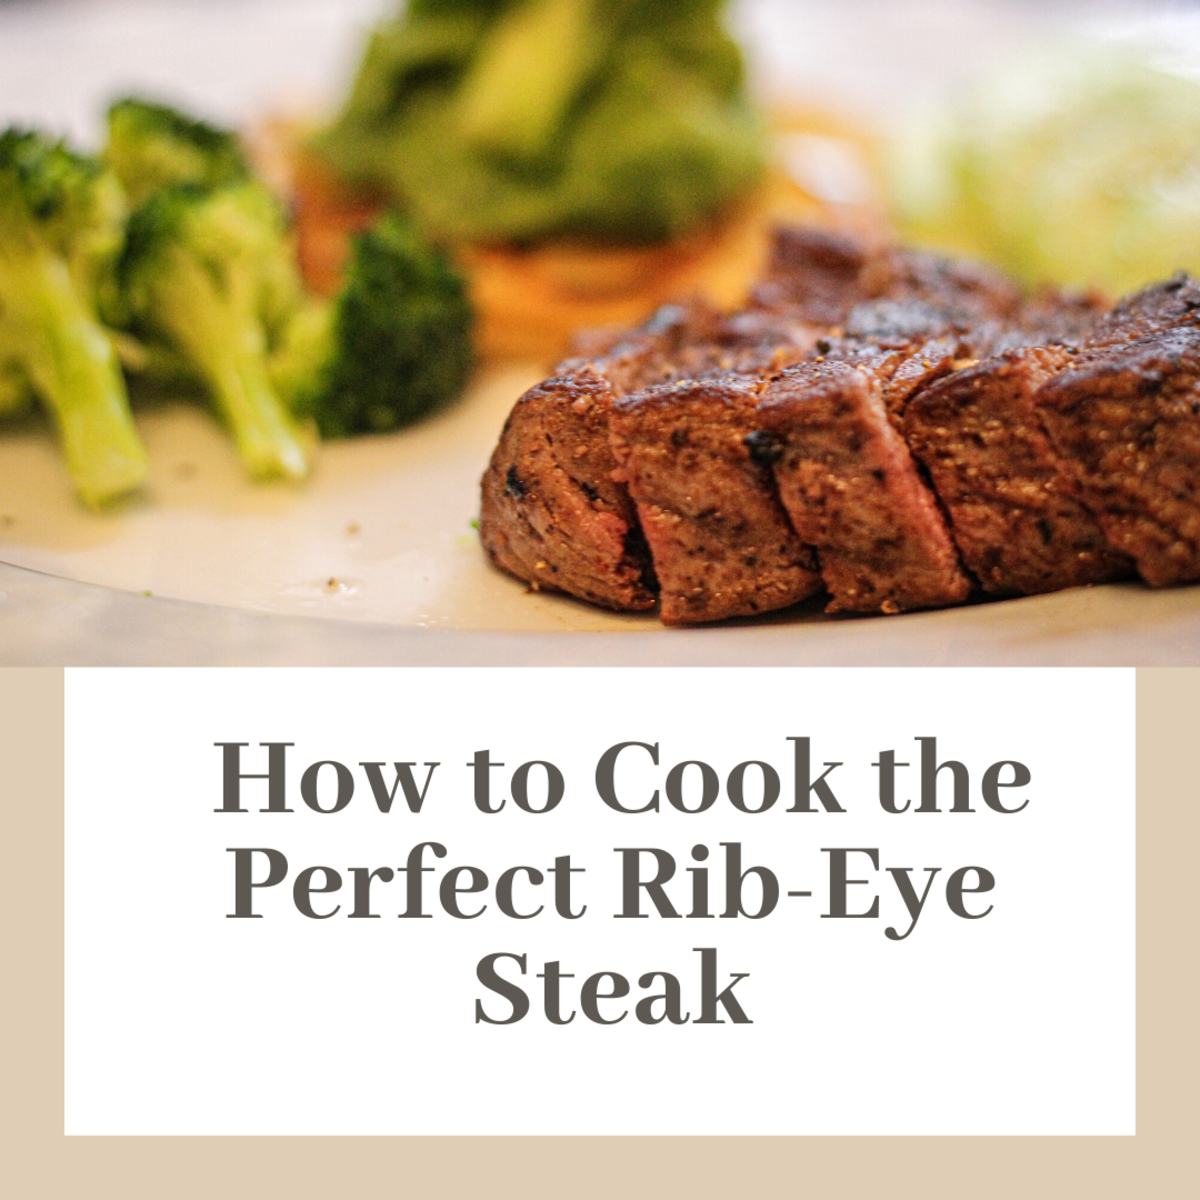 Rib-eye isn't always easy to cook, but this technique will help you cook it right every time.